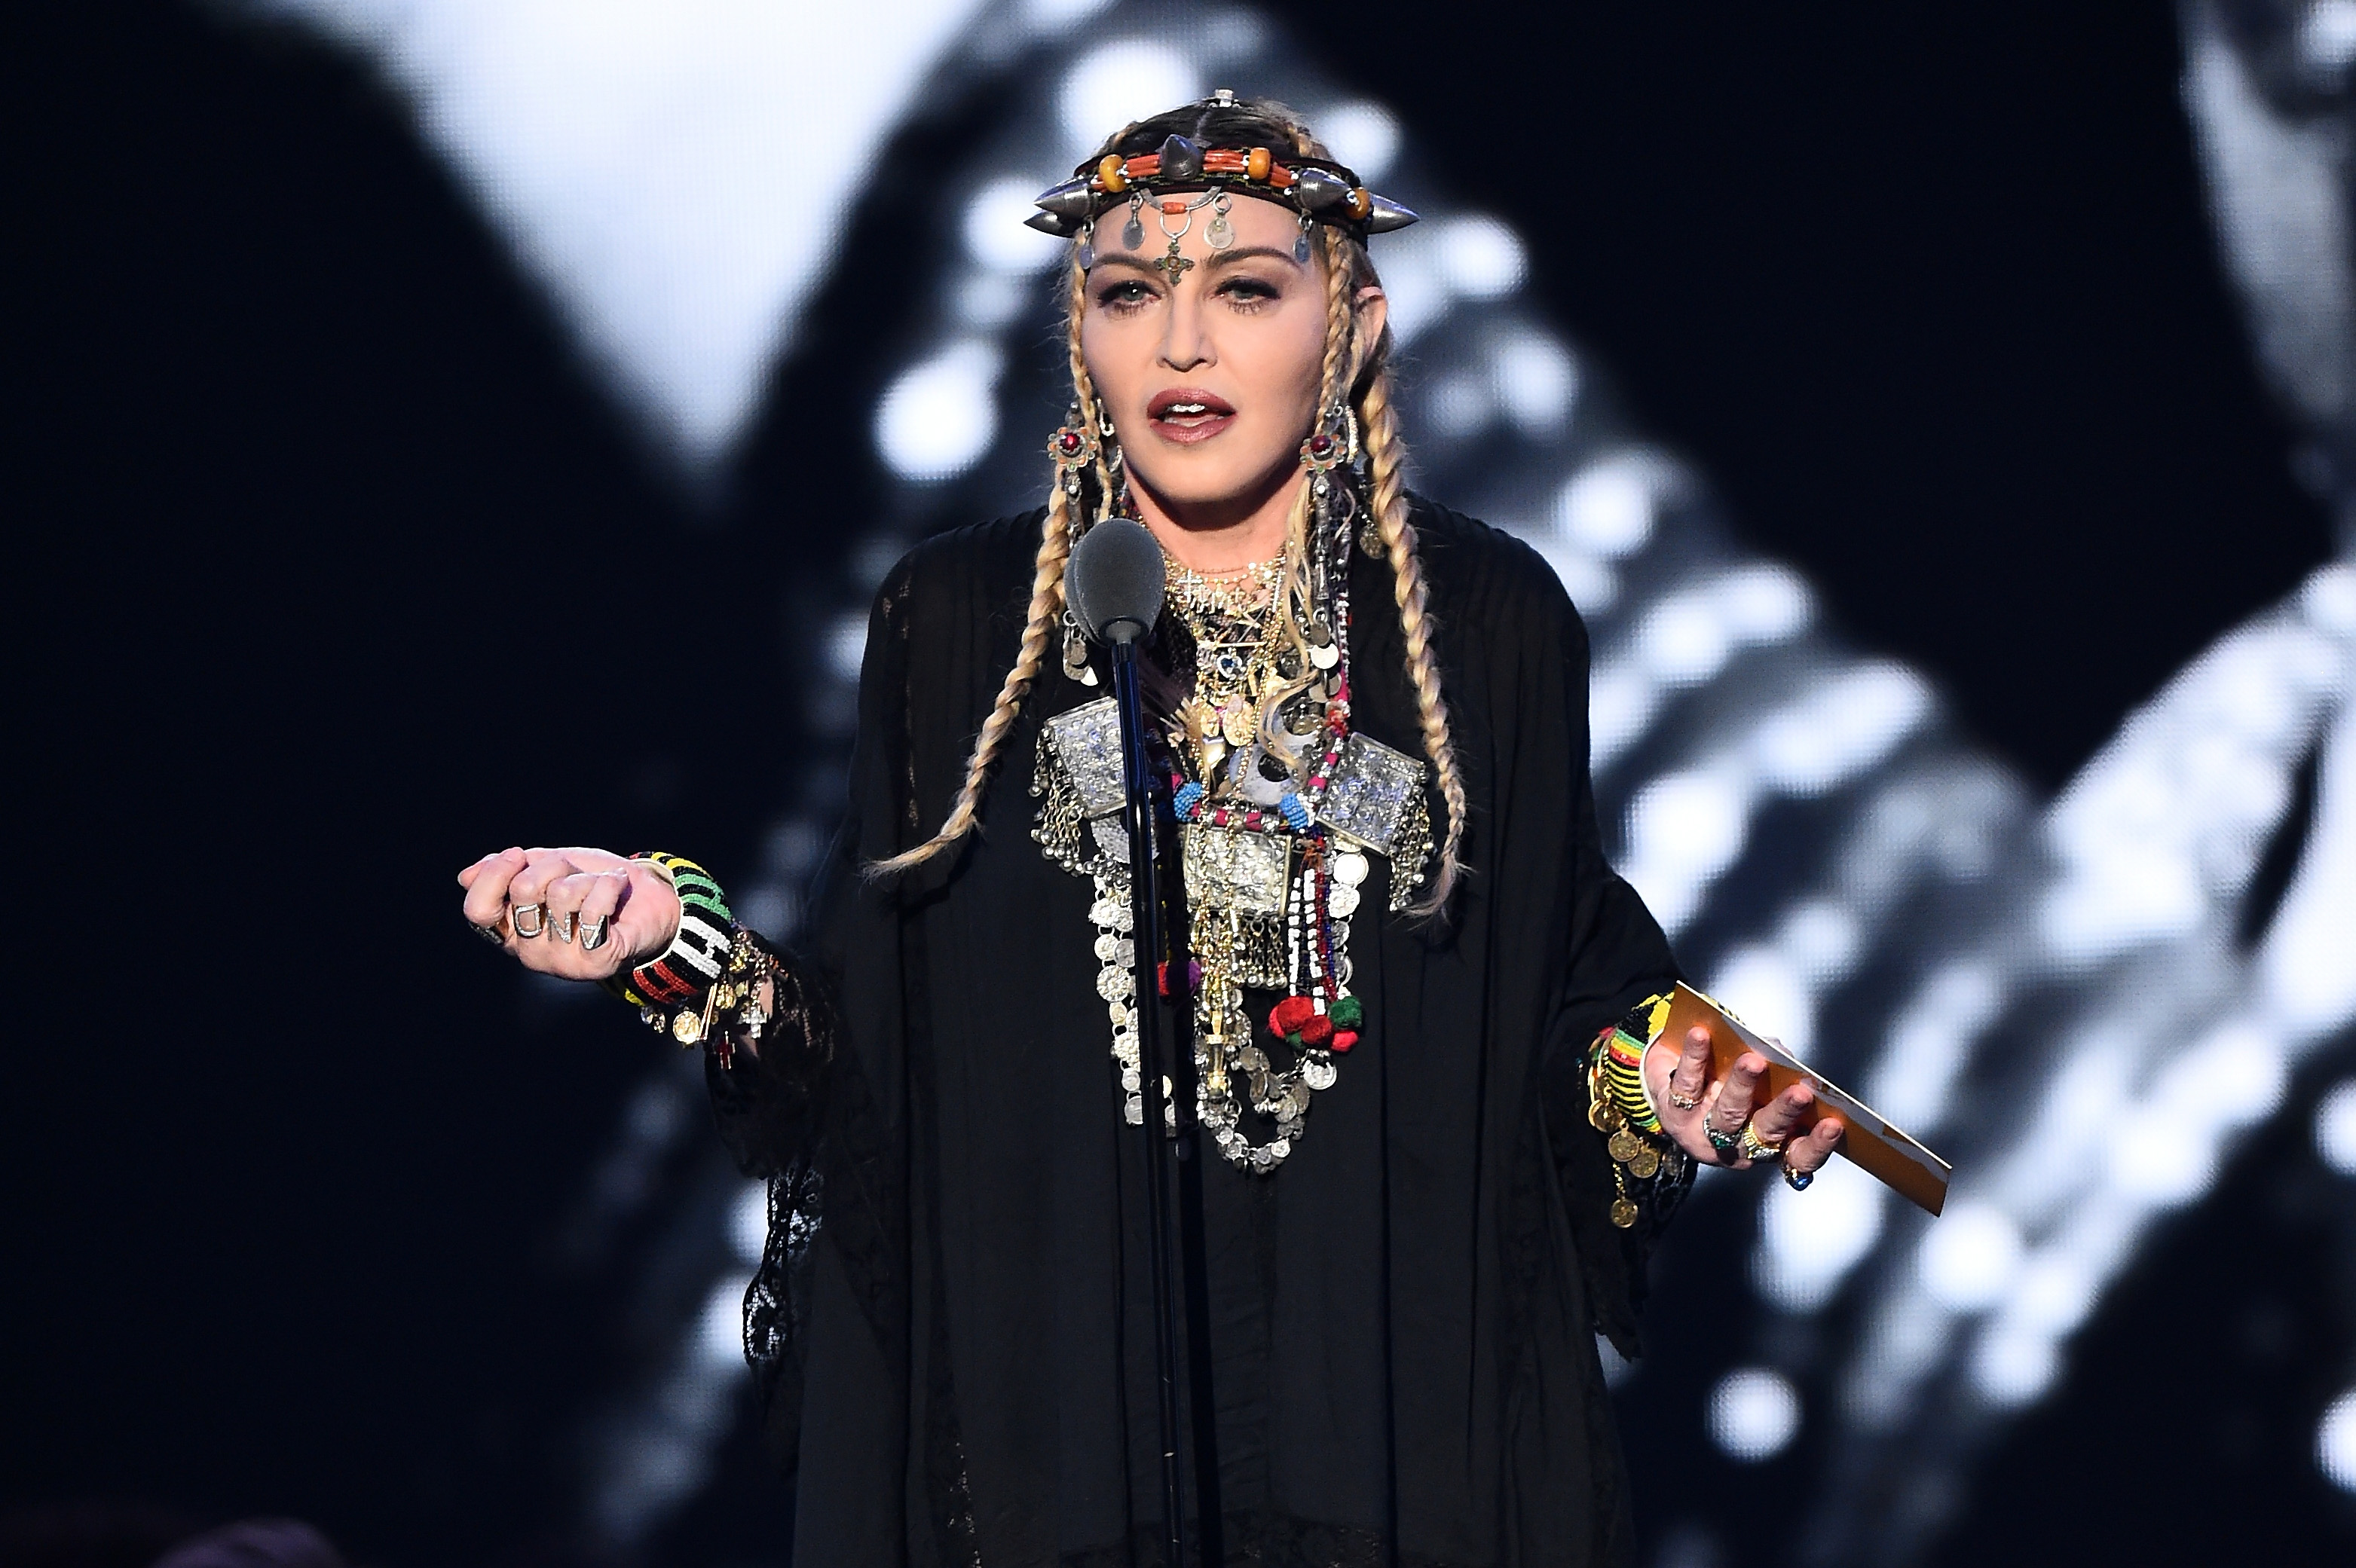 Madonna will be building an actual chapel on the Eurovision stage for her Like A Prayer performance and we're here for it